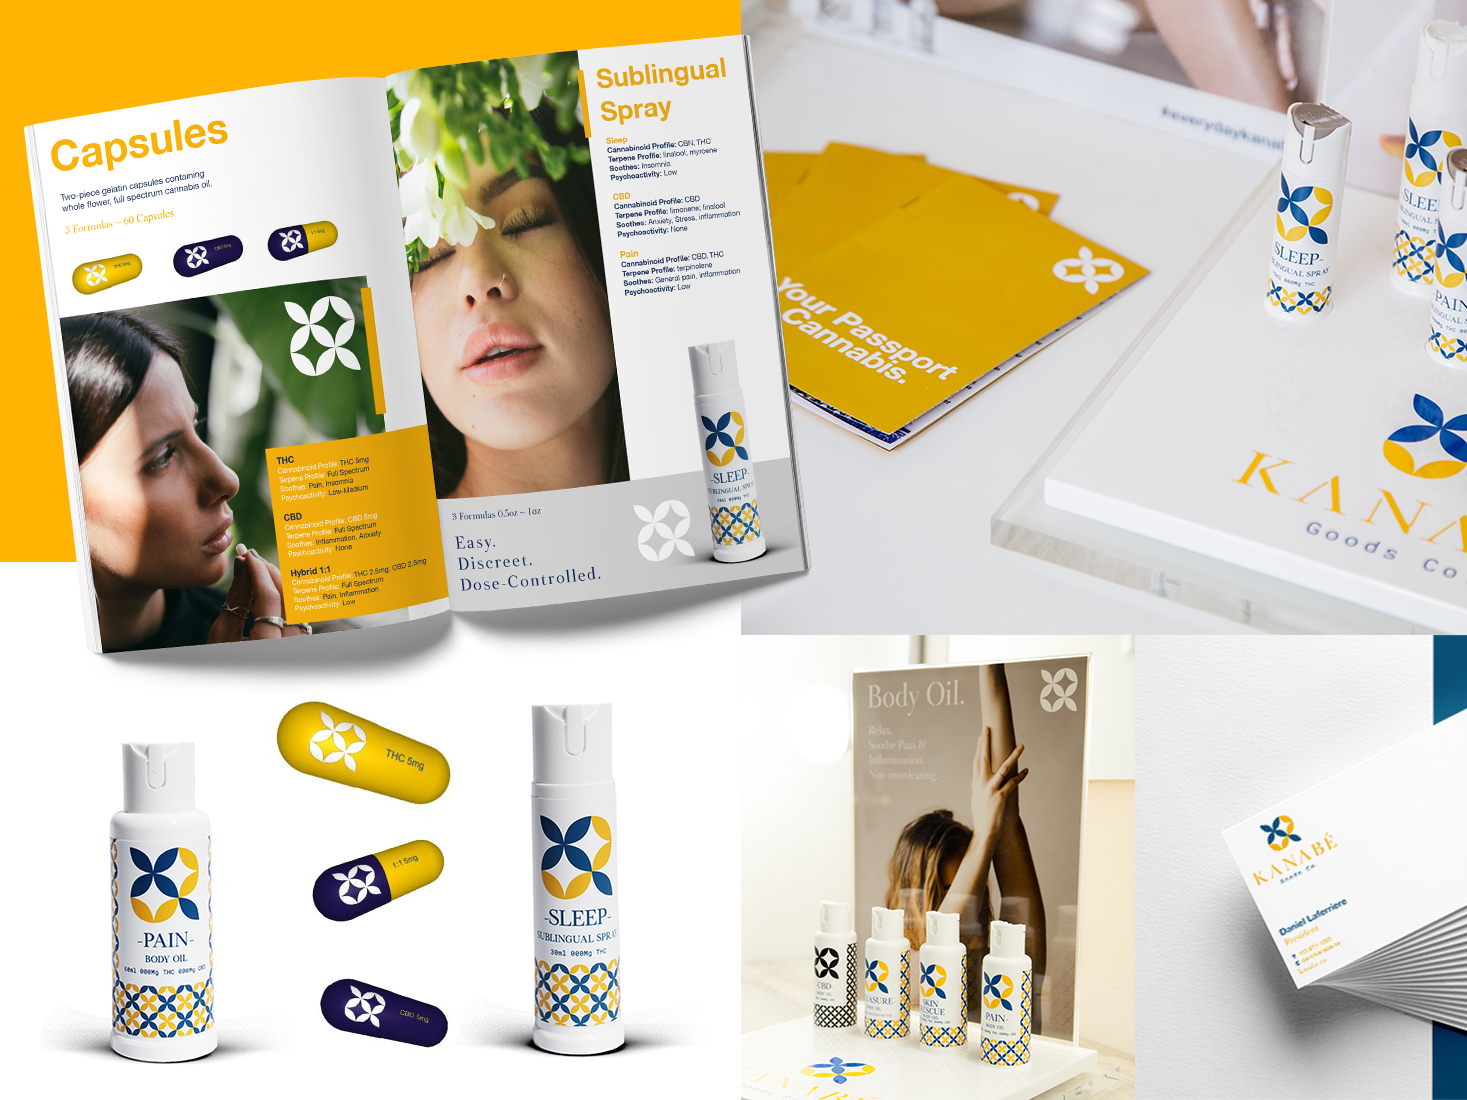 Brand packaging / marketing materials typography visual design print packaging design icon identity design branding creative direction art direction